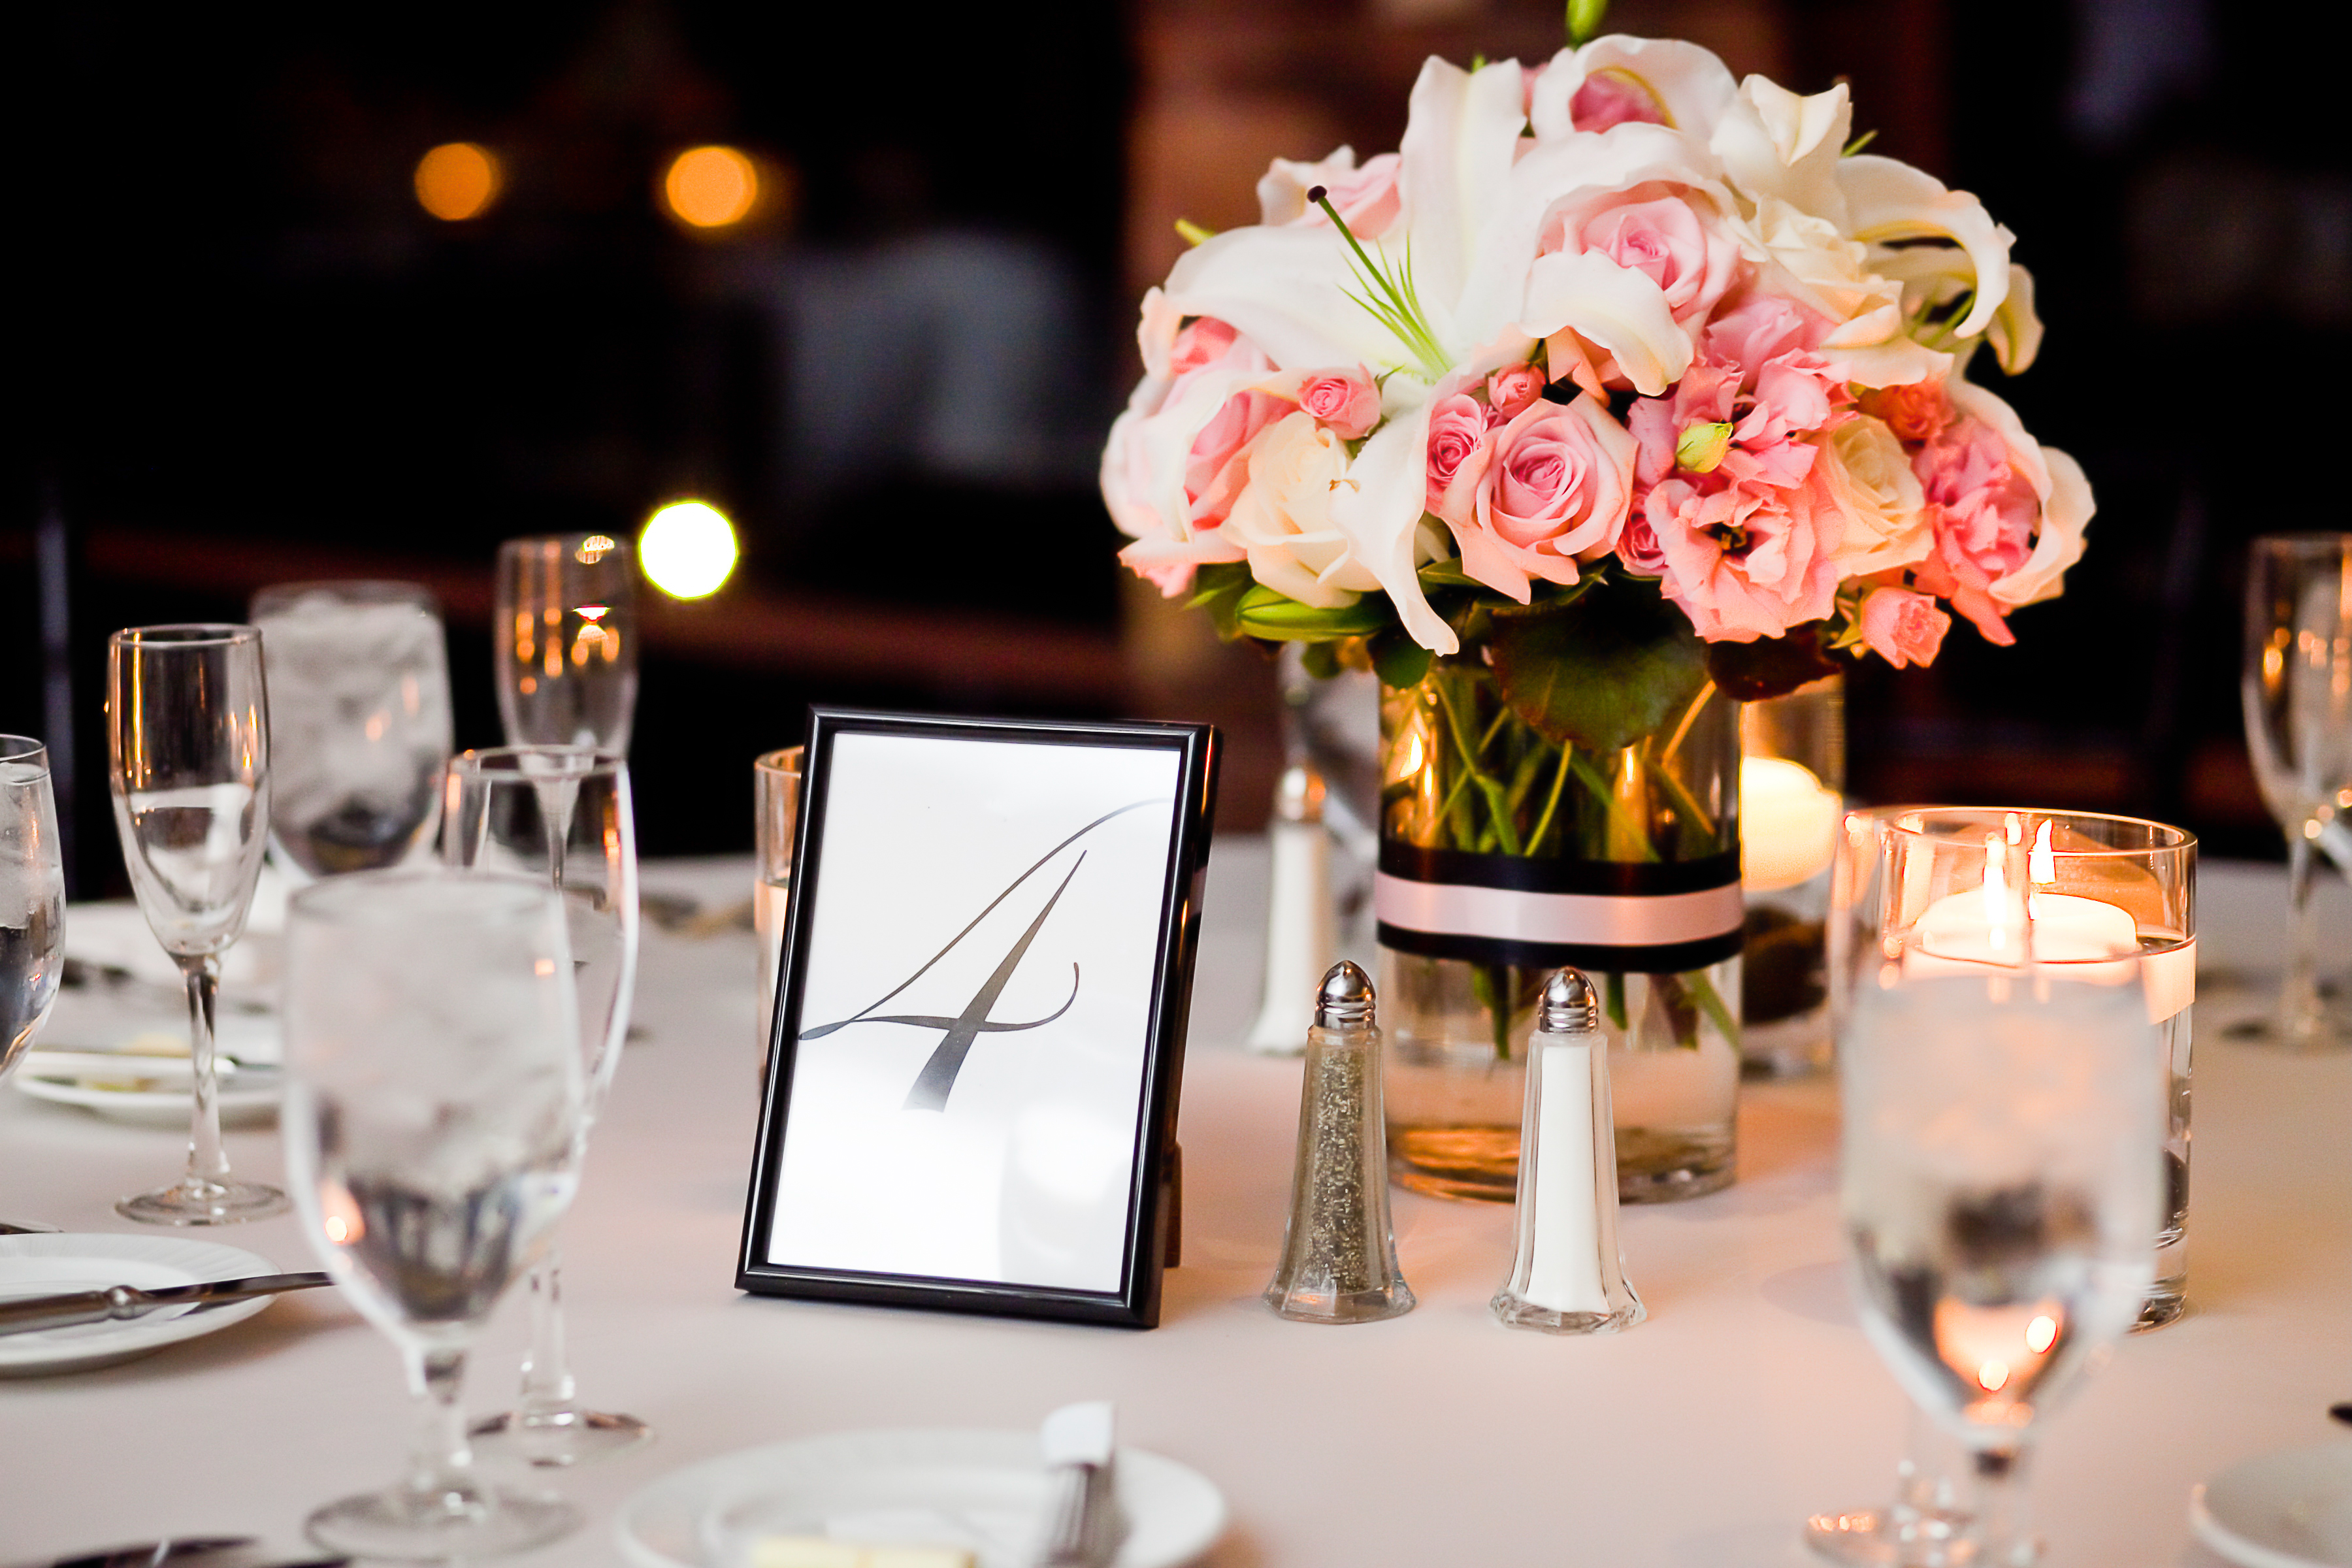 Centerpieces On A Table At Wedding Reception Vouv Dallas Event Venue